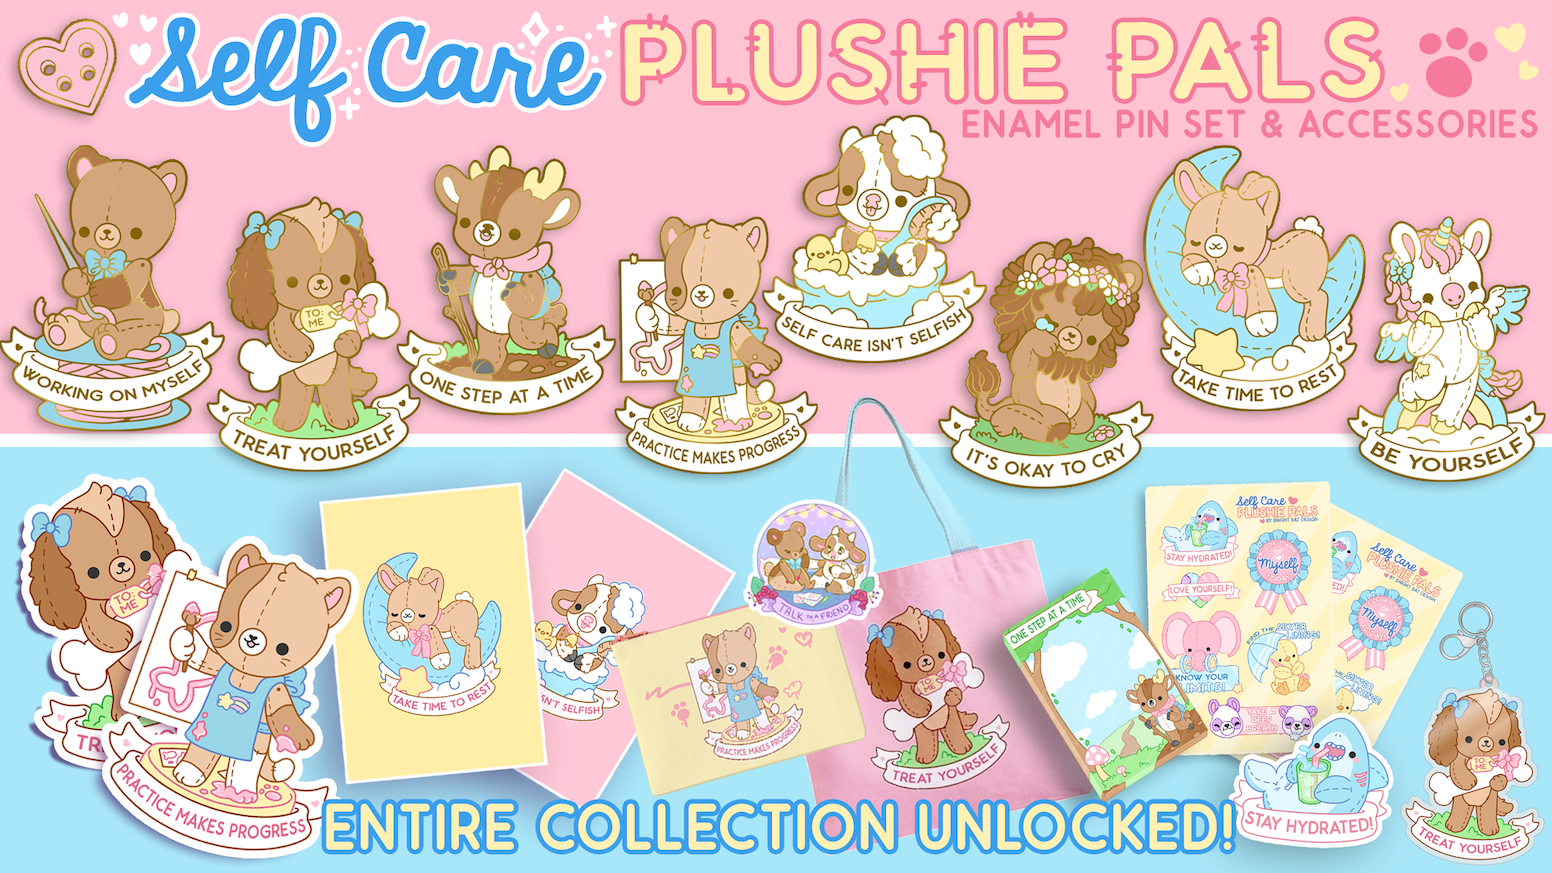 Self Care Plushie Pals - Kawaii Enamel Pins & Accessories by